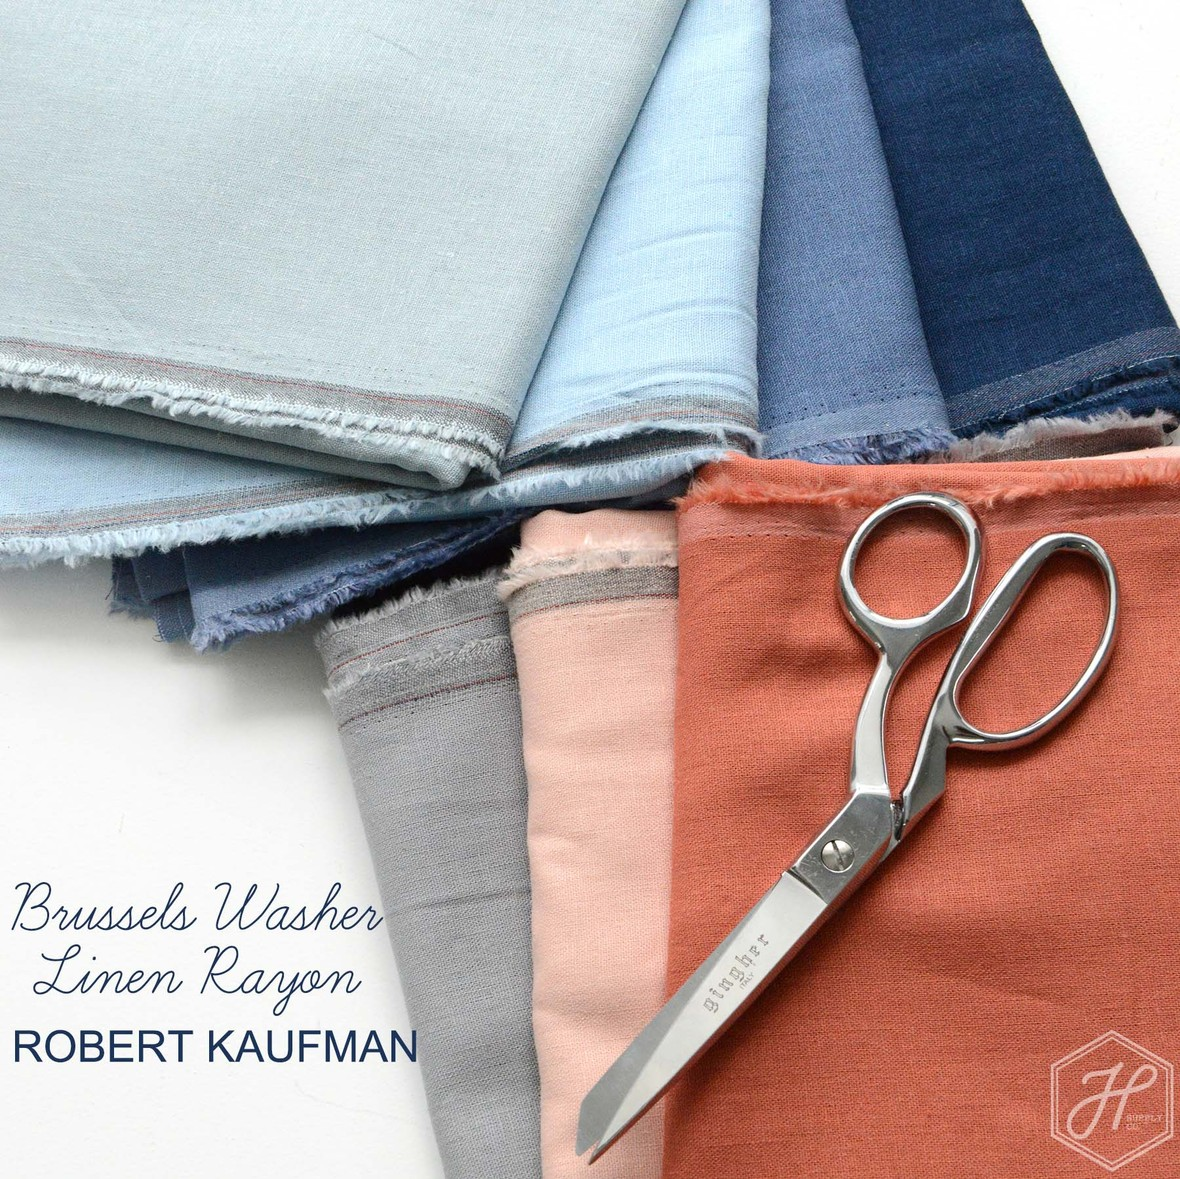 Brussels Washer Linen Rayon Solids from Robert Kaufman at Hawthorne Supply Co